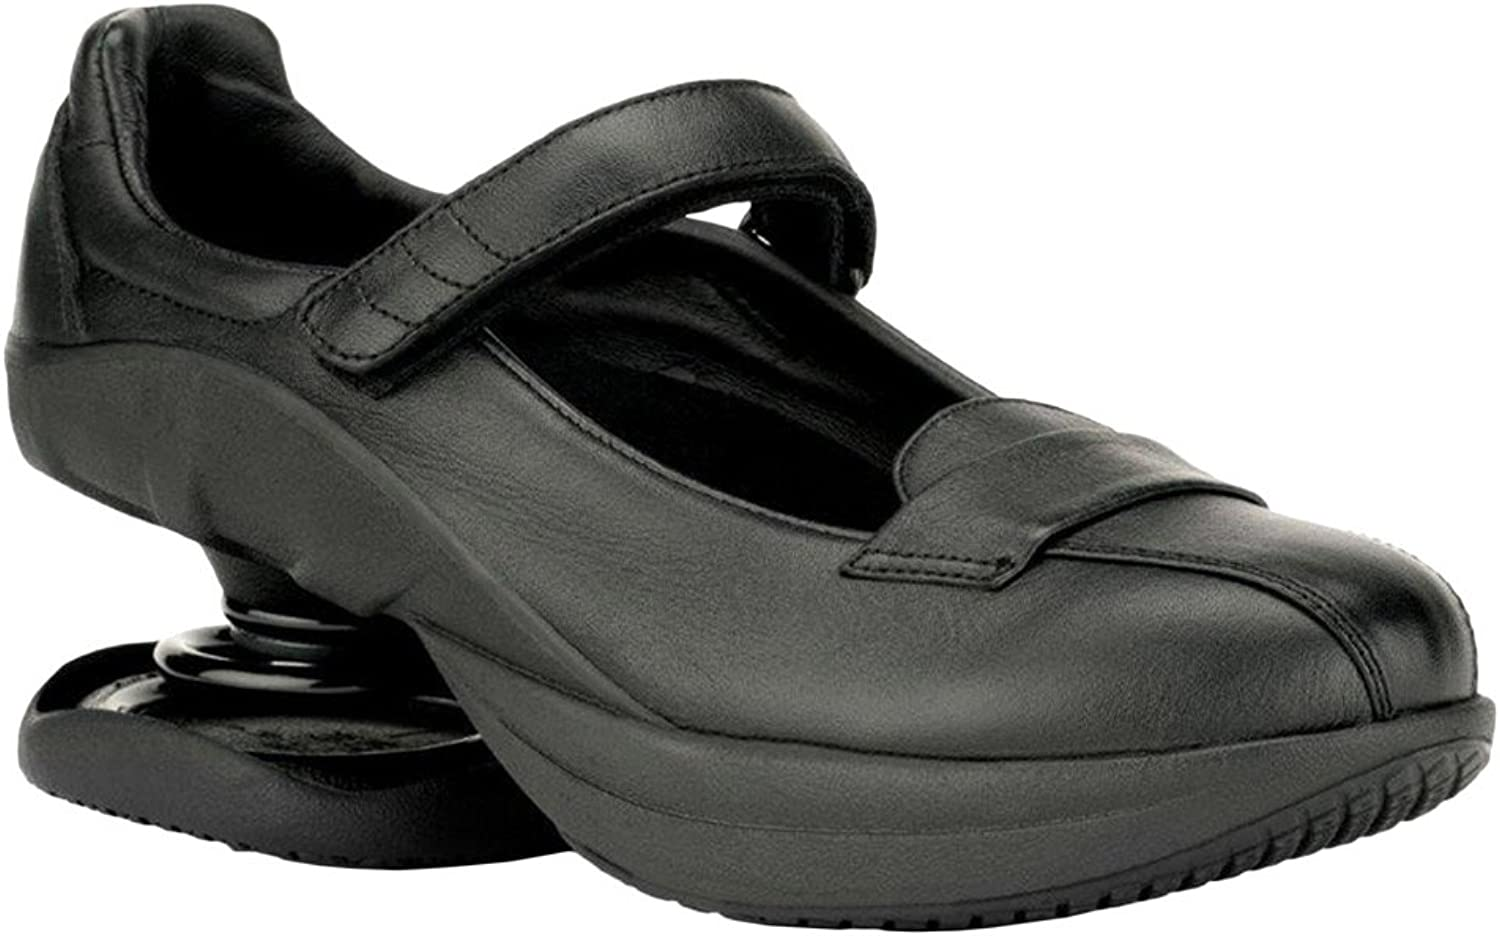 Z-CoiL Pain Relief Footwear Women's Sofia Slip Resistant Black Leather Mary Jane